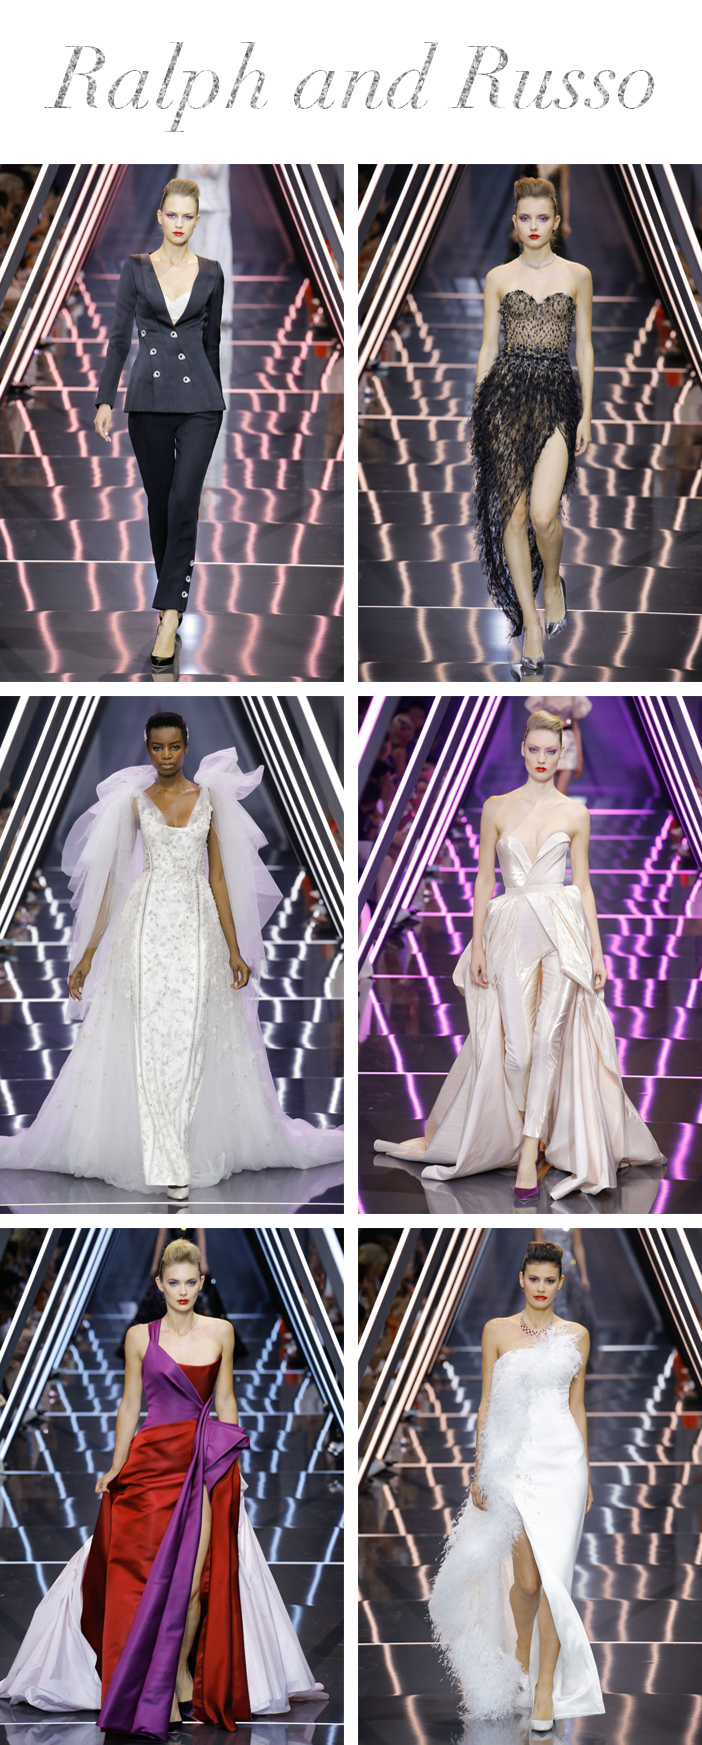 Semana de Alta Costura de Paris - Inverno 2019 - Ralph and Russo